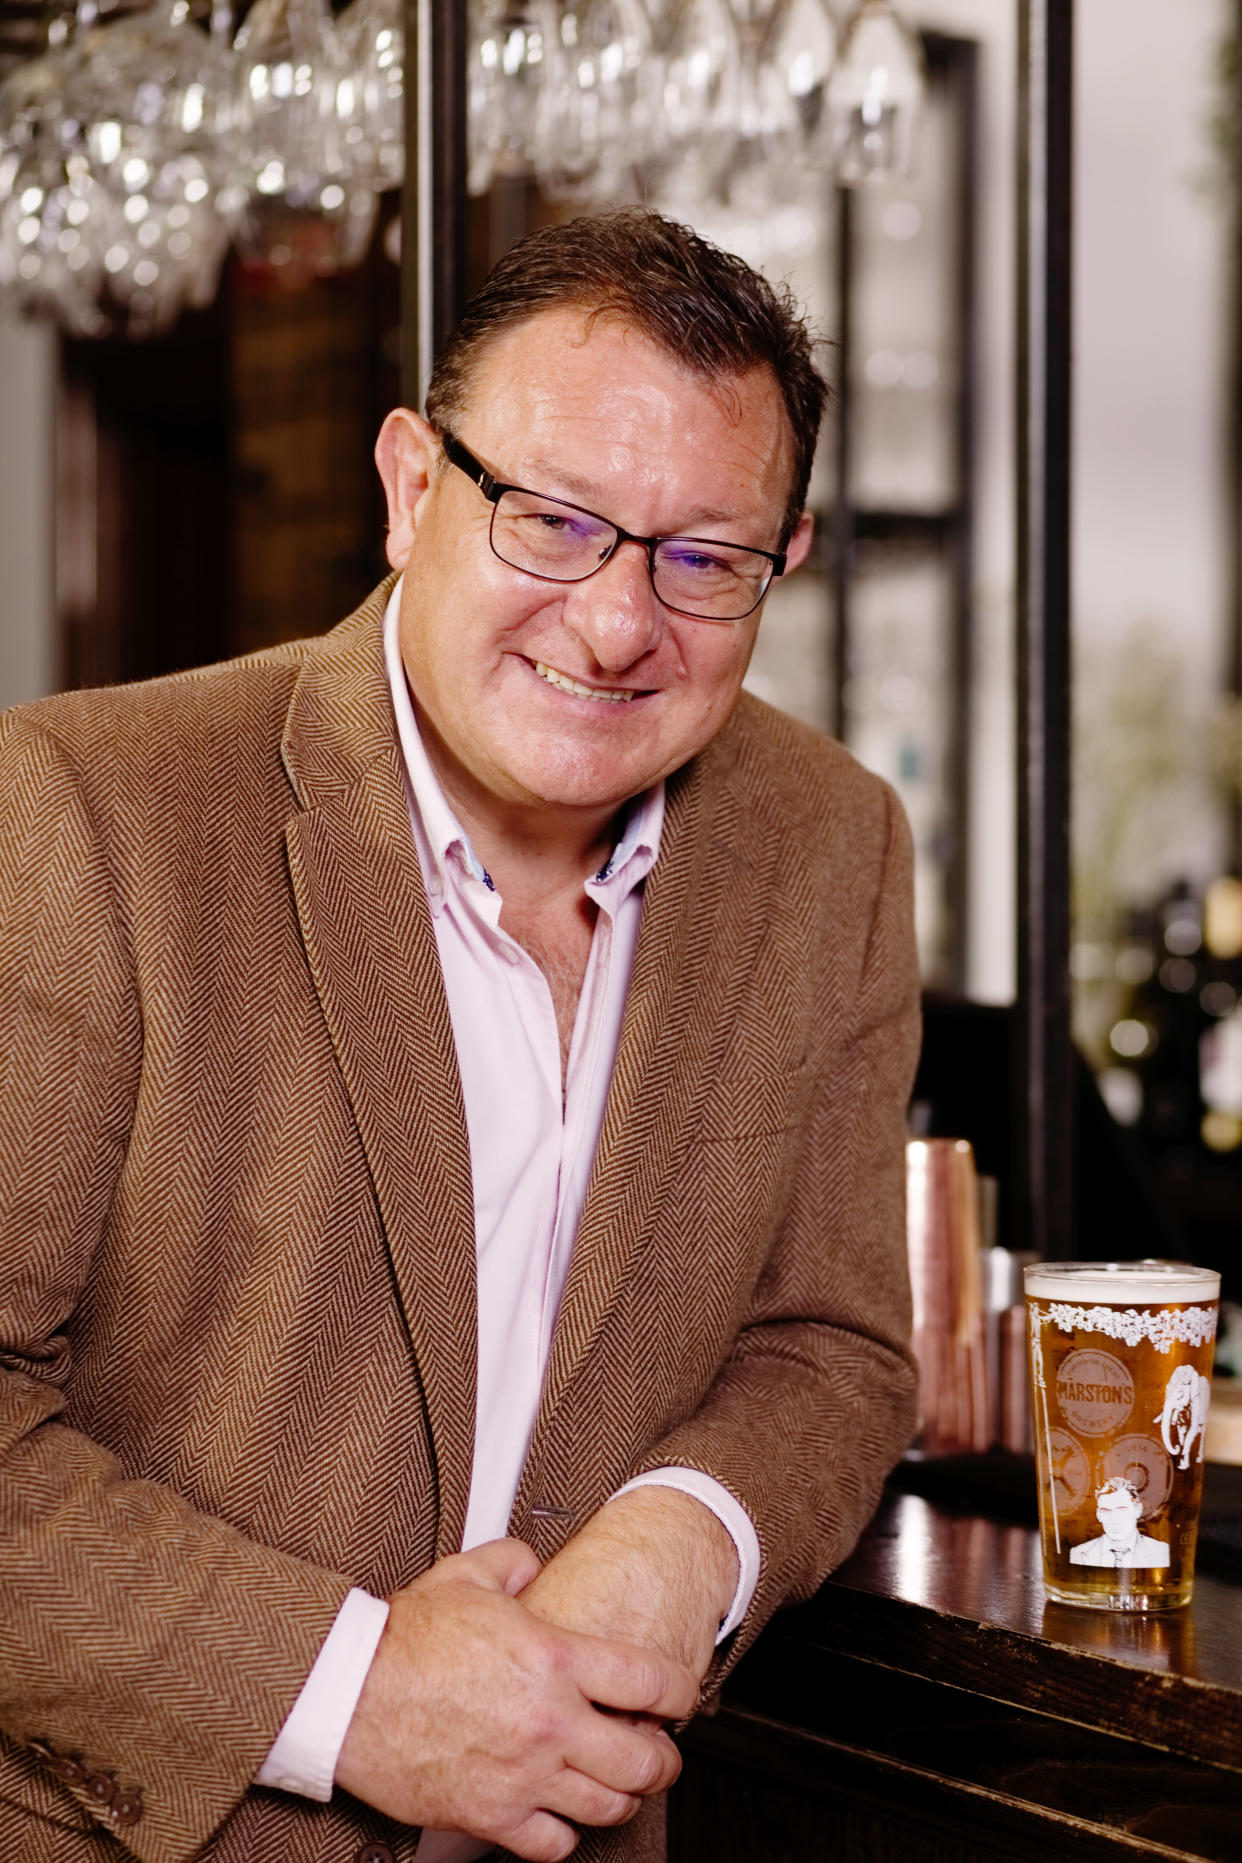 Andrew Andrea took over at the helm of Marston's on October 3 (Marston's/PA)